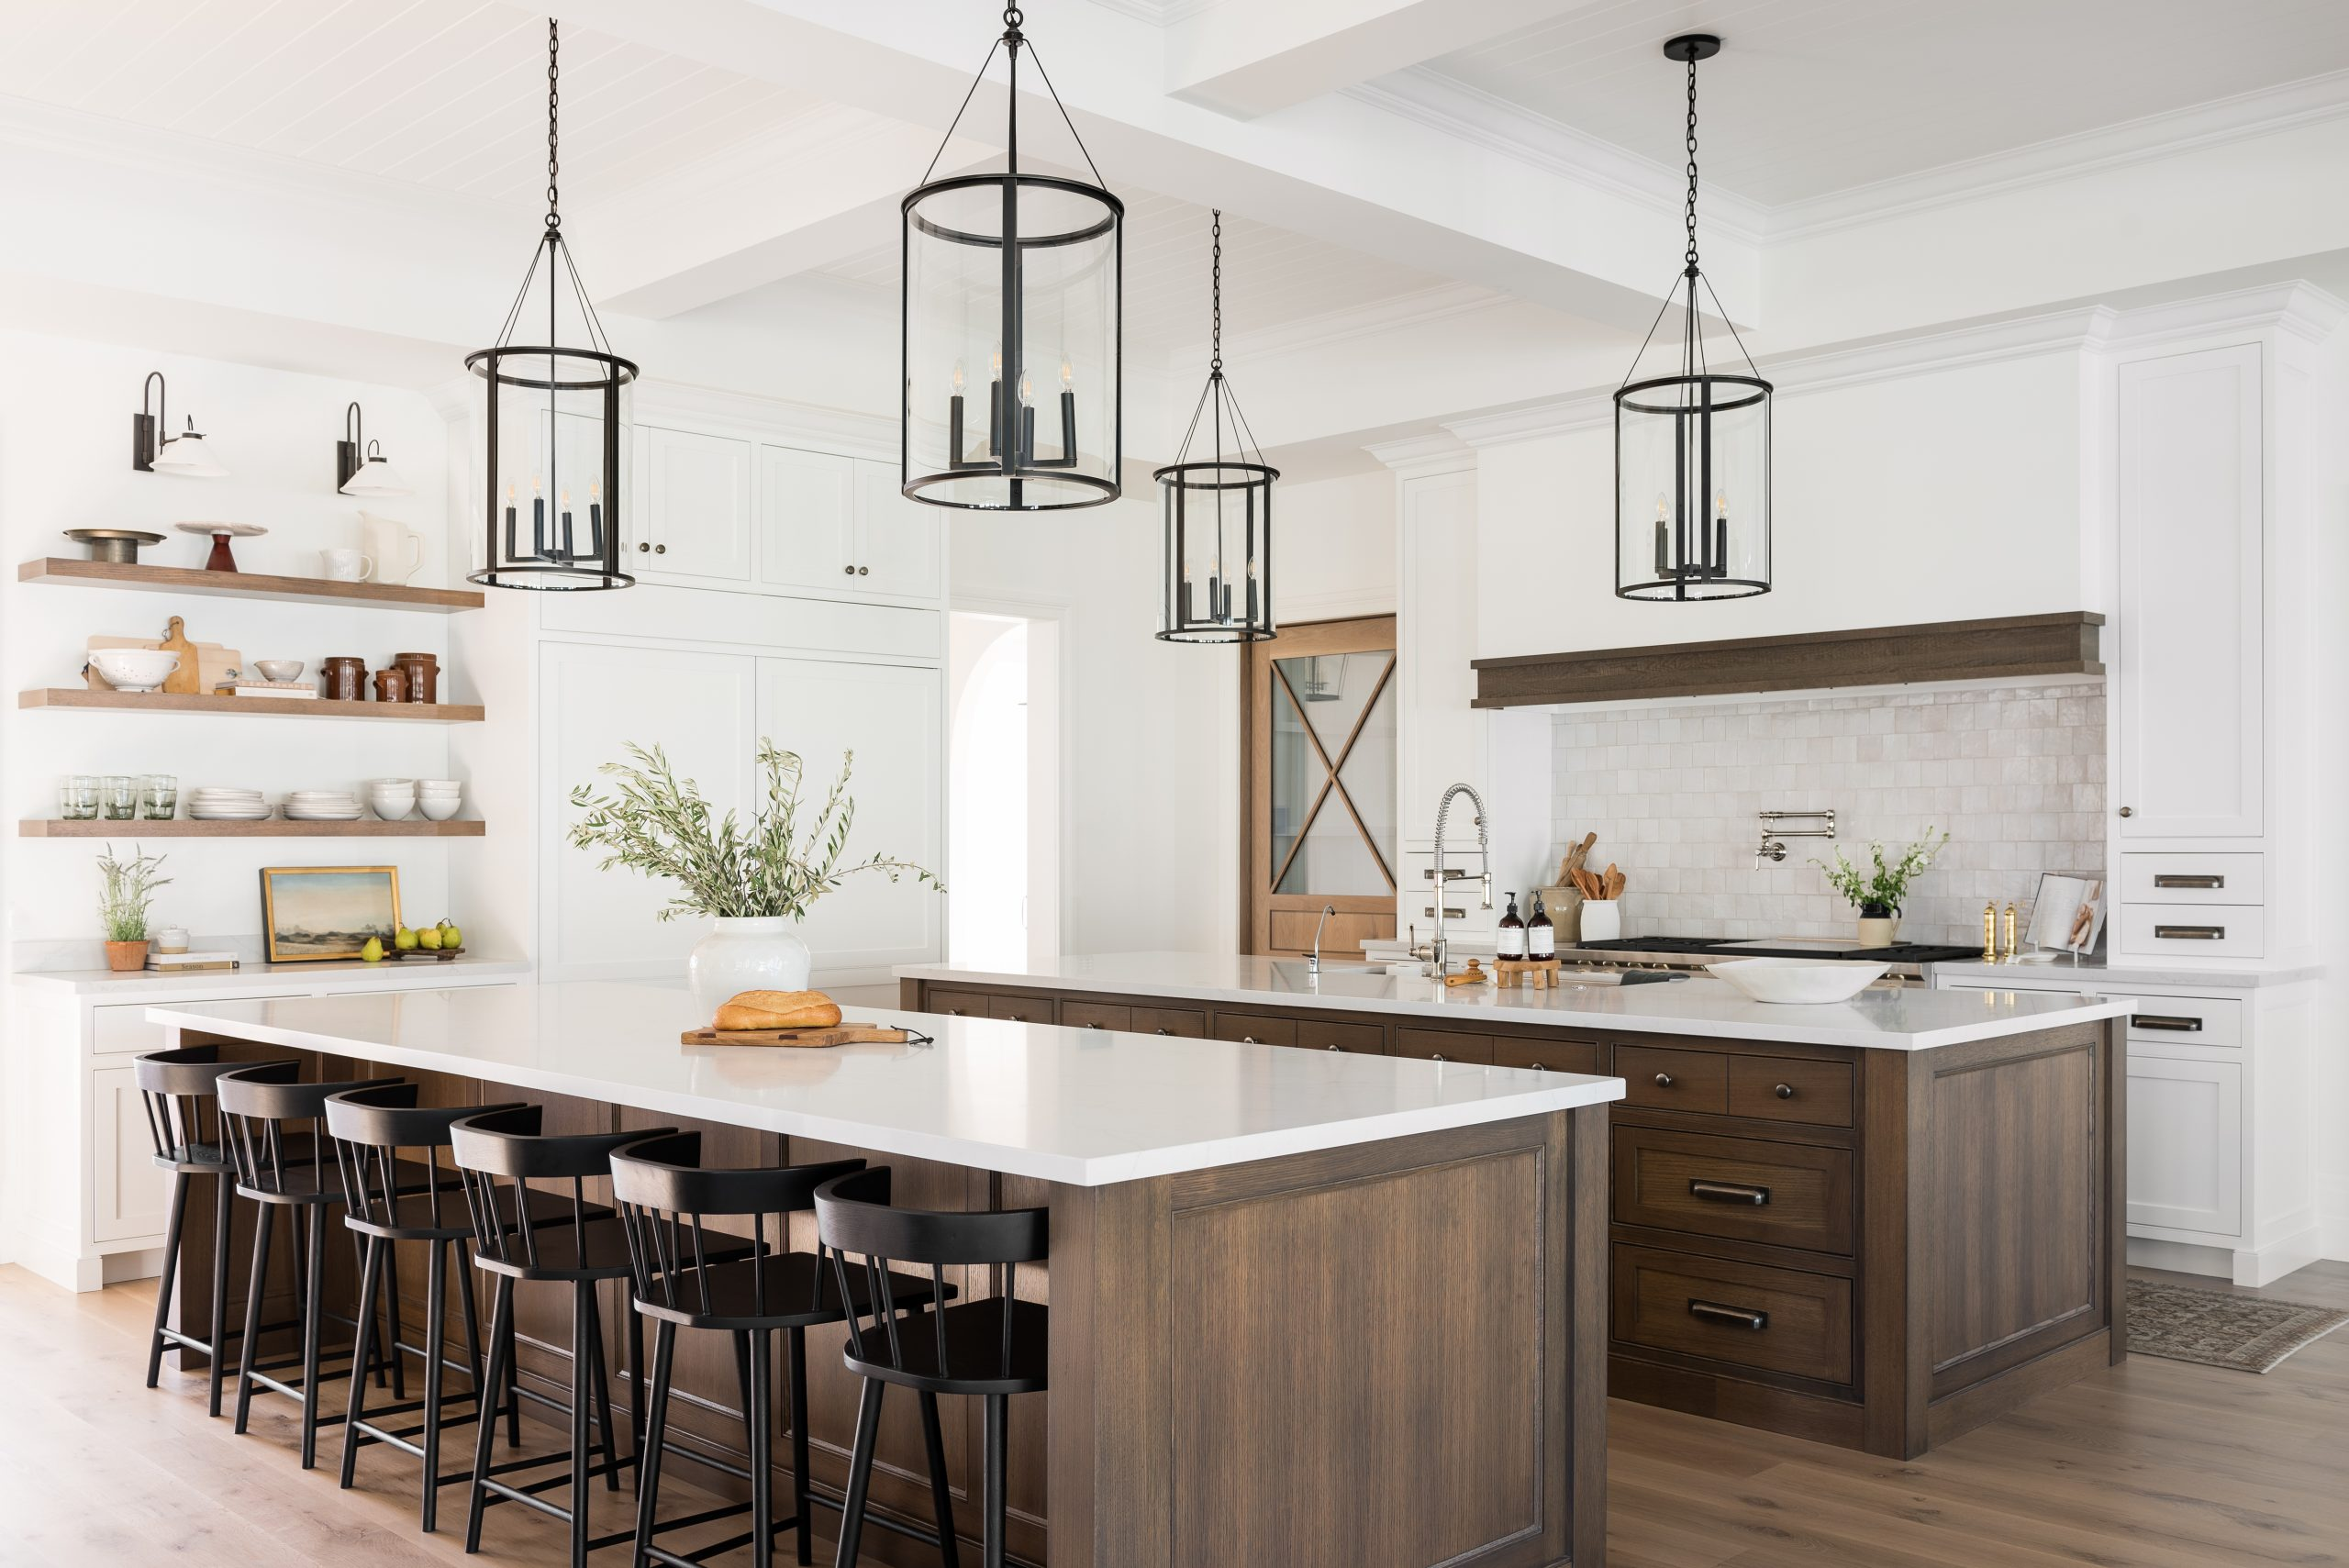 Home on The Ranch: The Great Room & Kitchen